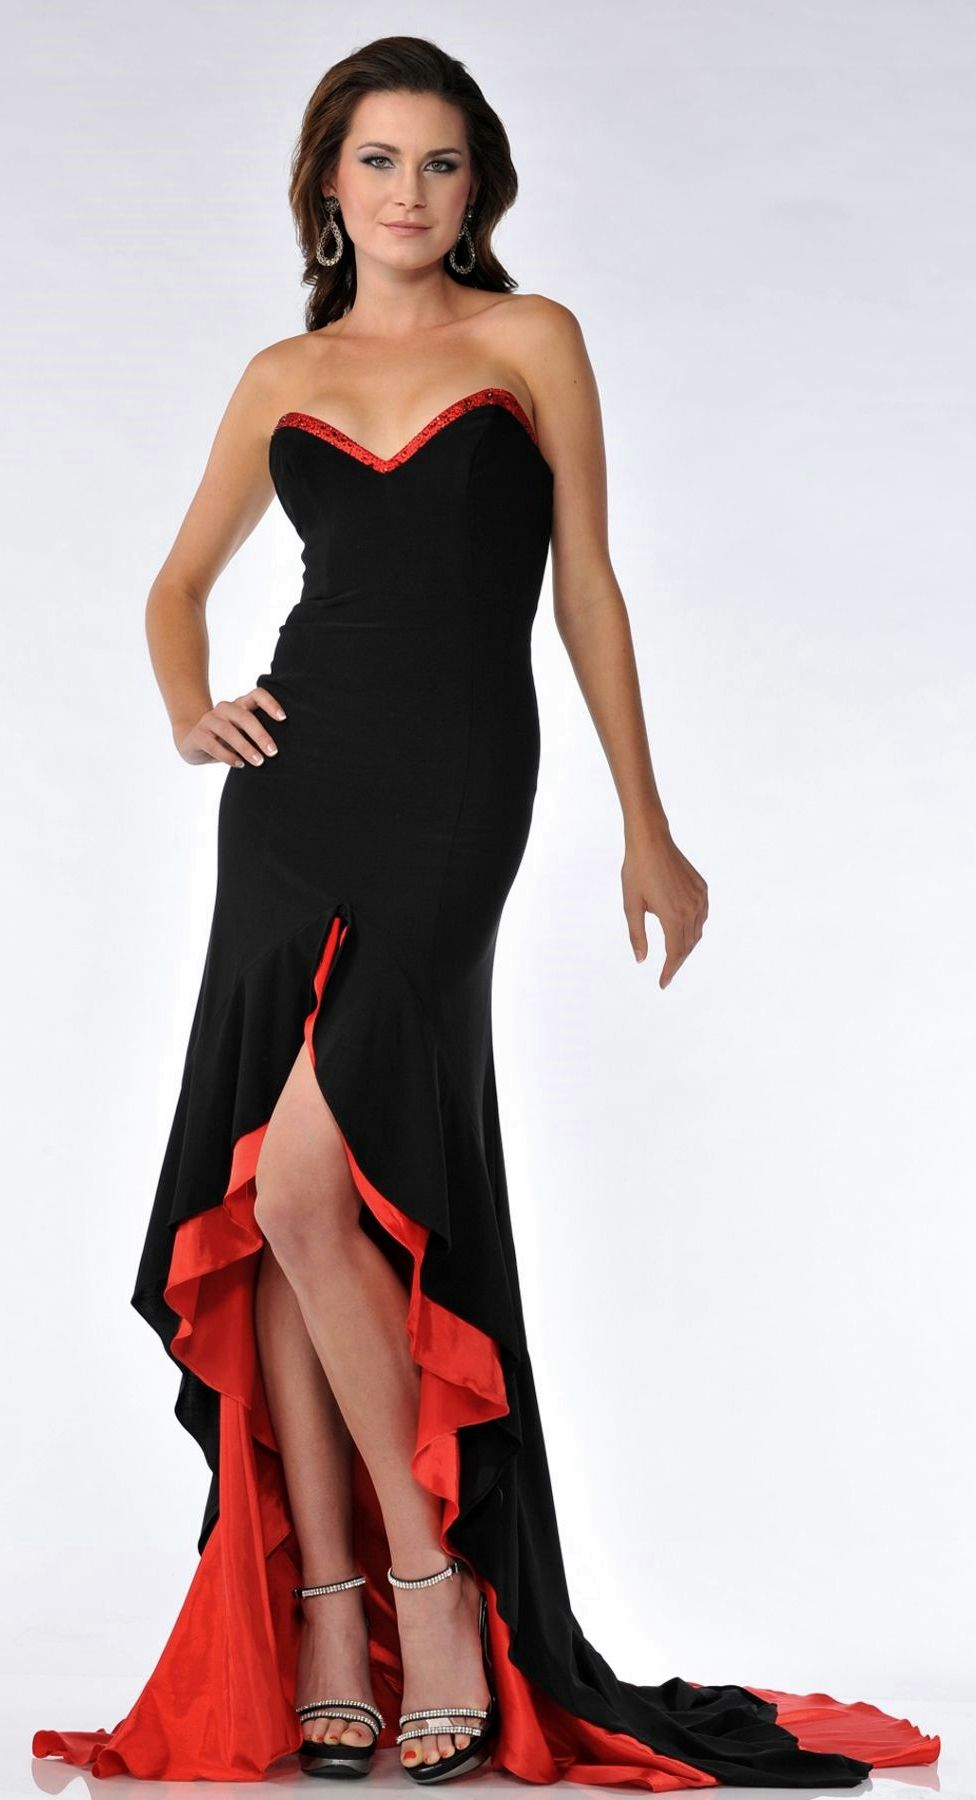 6c1b9b0886c Kayla I want this dress with a mask with red n black feathers!! Lol ...